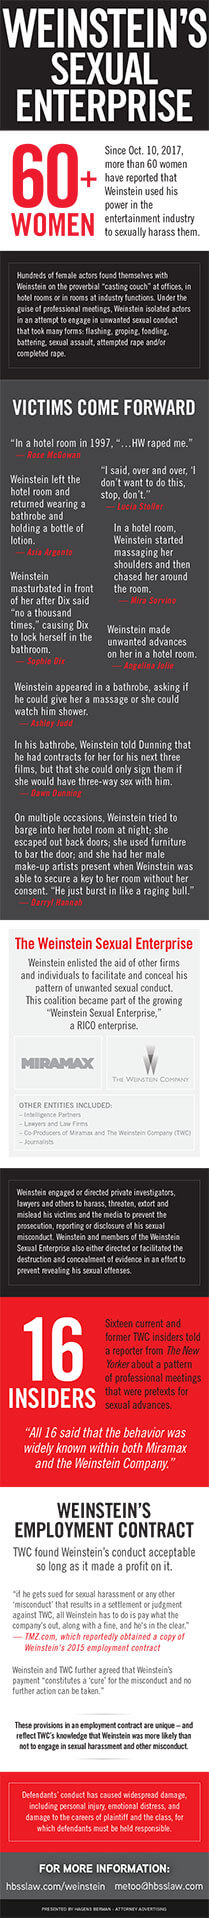 Harvey Weinstein Sexual Harassment Enterprise Infographic